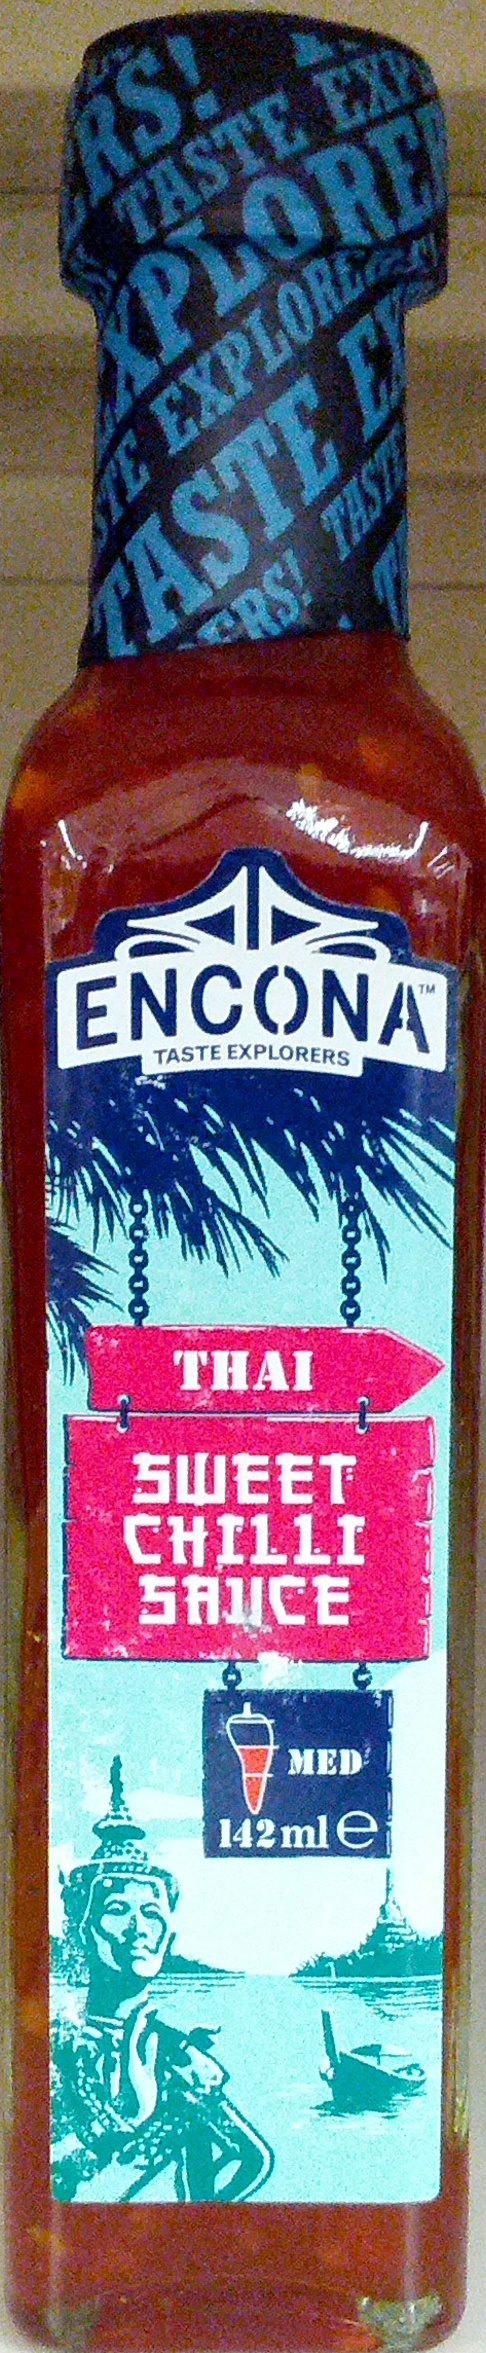 Thai Sweet Chili Sauce - Product